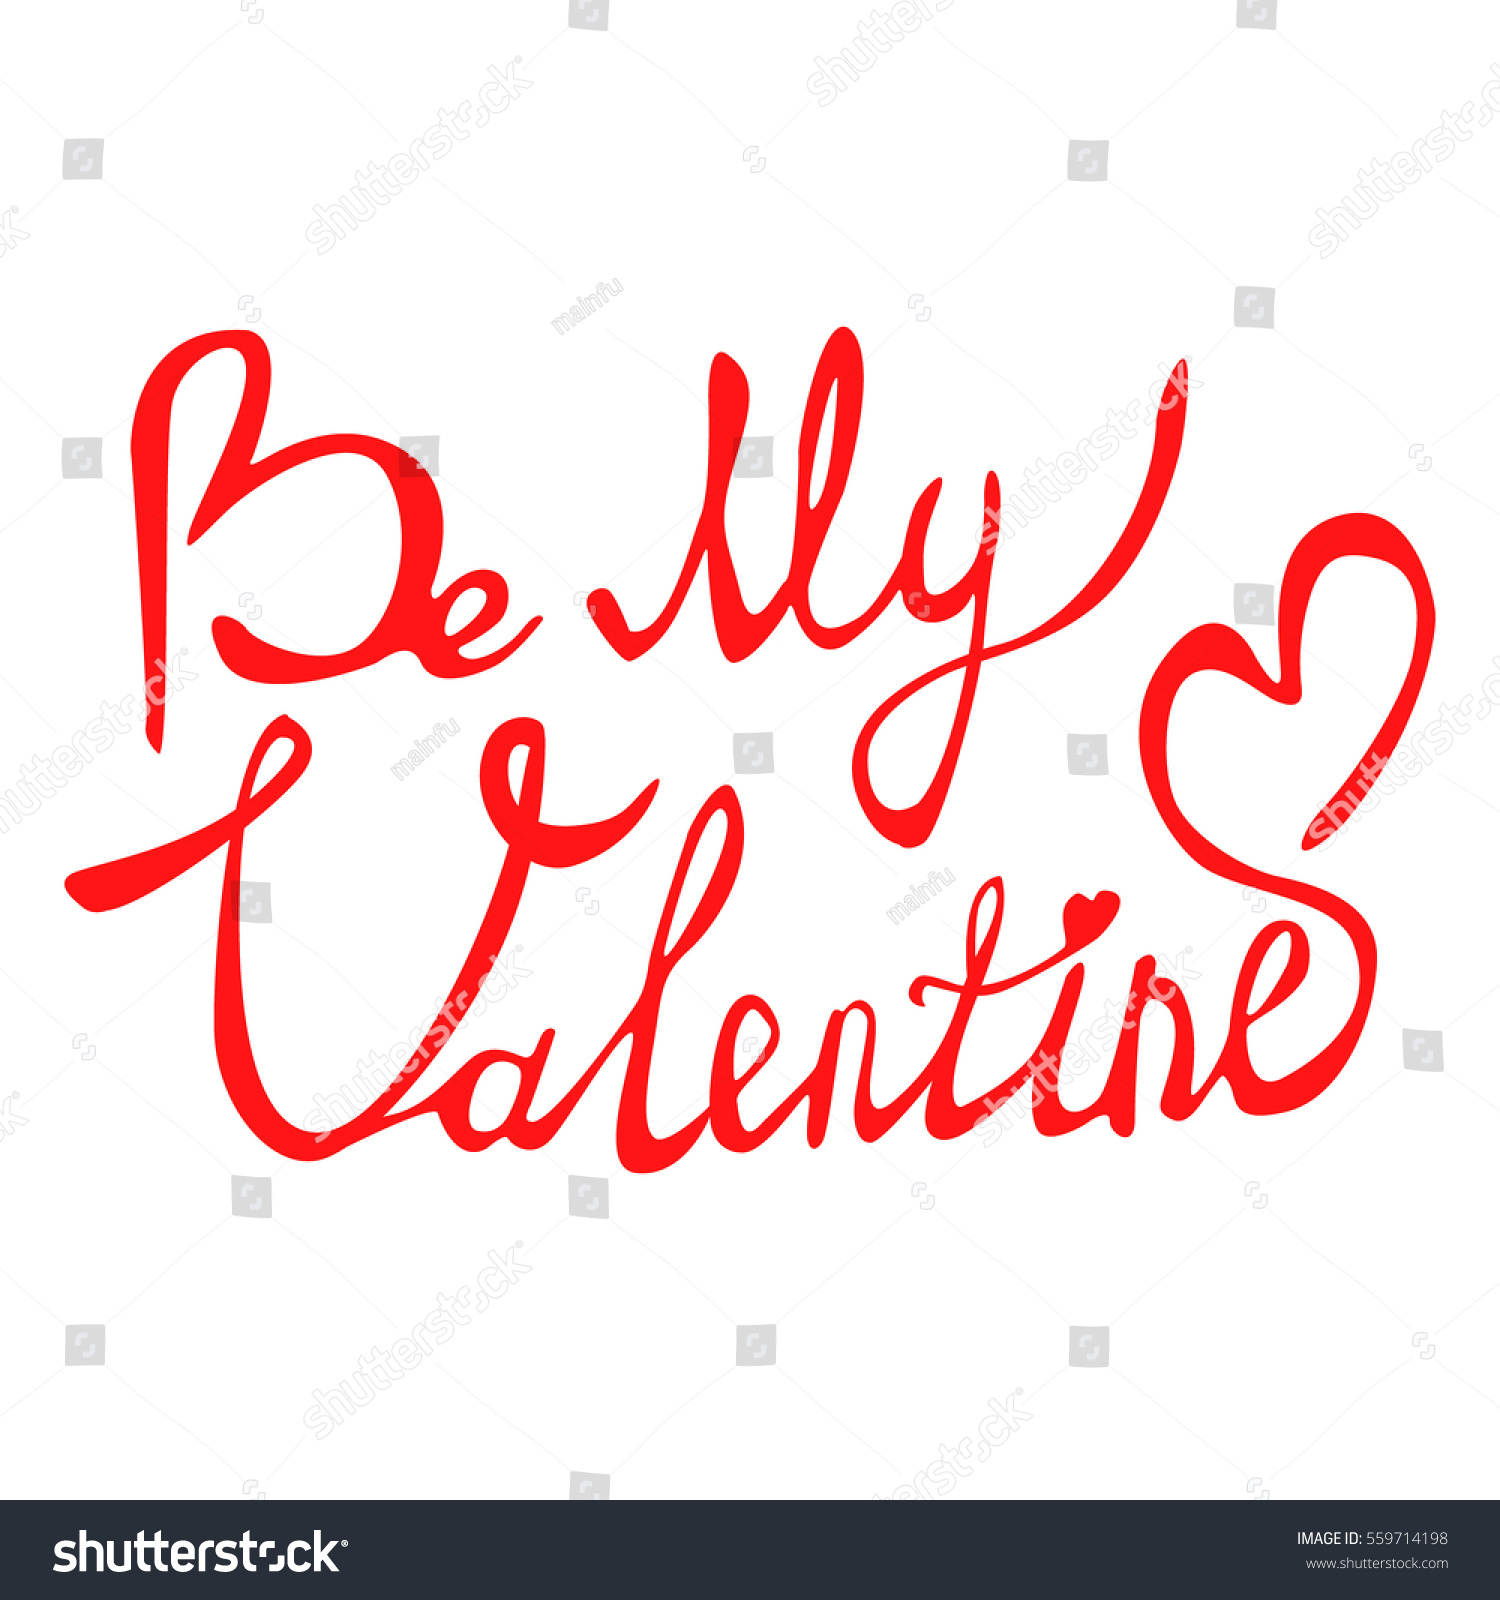 Be my valentine text greeting card stock vector 559714198 be my valentine text for greeting card vector holiday design on background kristyandbryce Choice Image